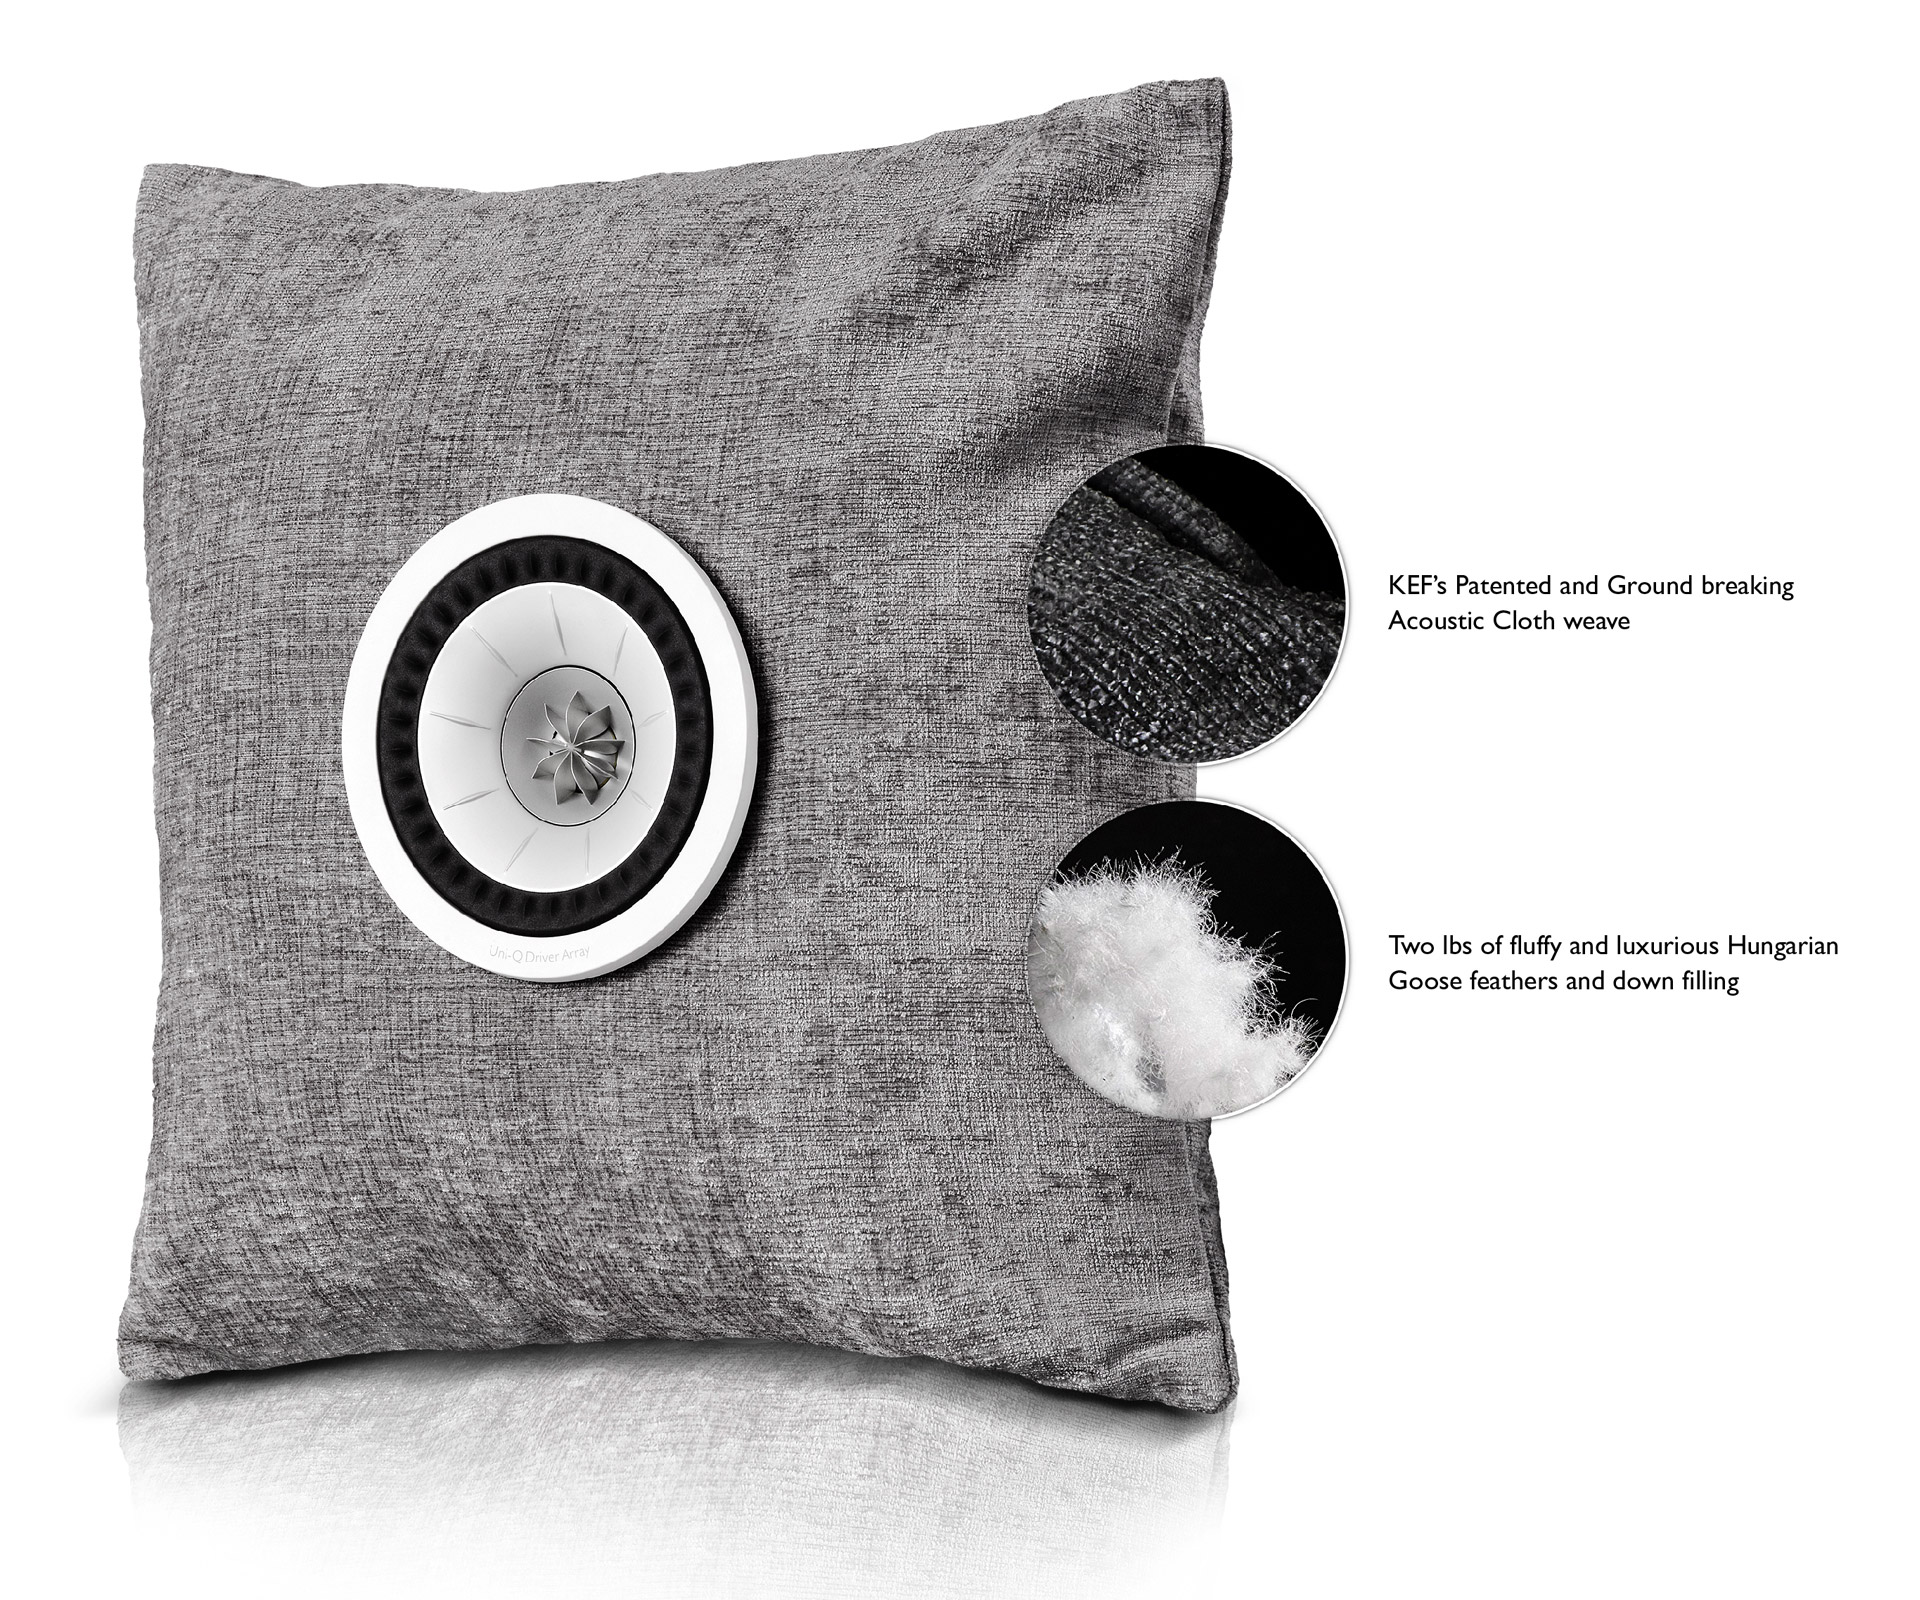 KEF CSH Cushion Speaker Hybrid